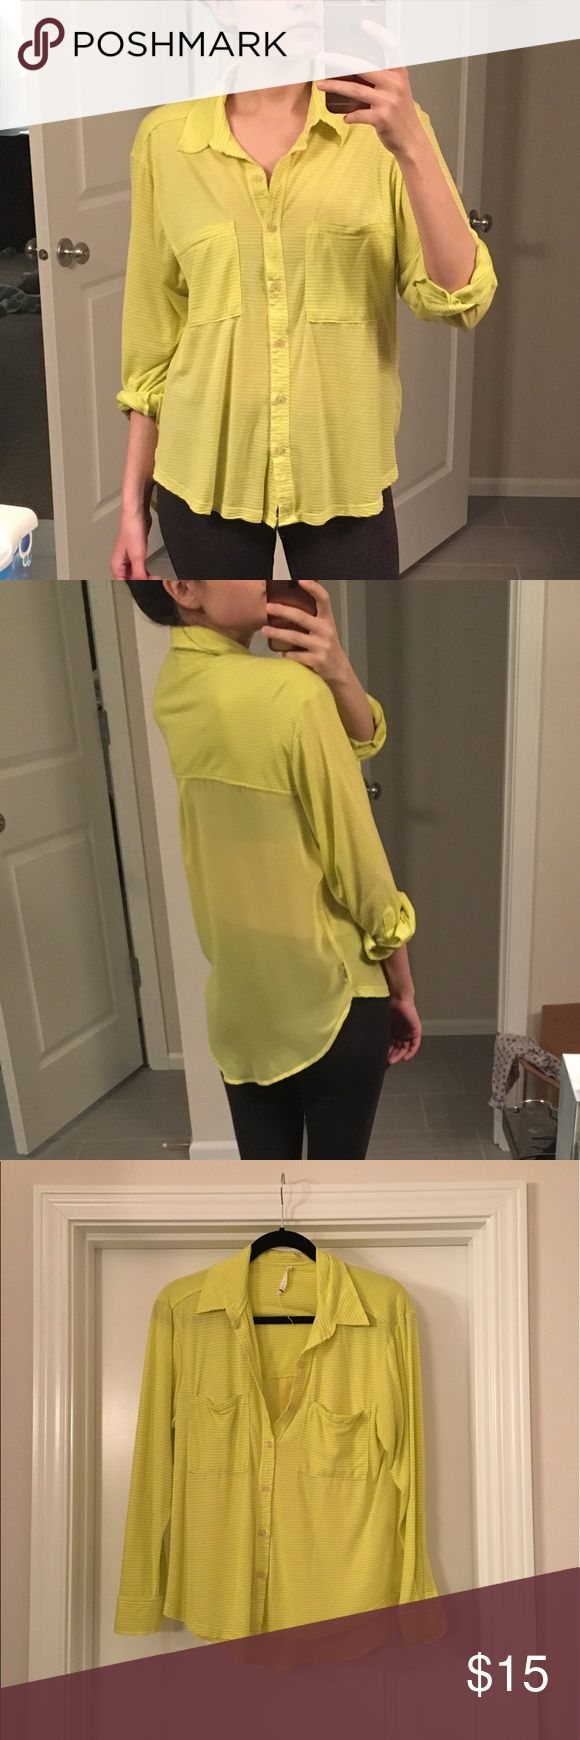 Willow and clay neon yellow top size XS willow and clay topic neon yellow. Very light. Perfect for spring/summer. Back is sheer. Willow & Clay Tops Button Down Shirts